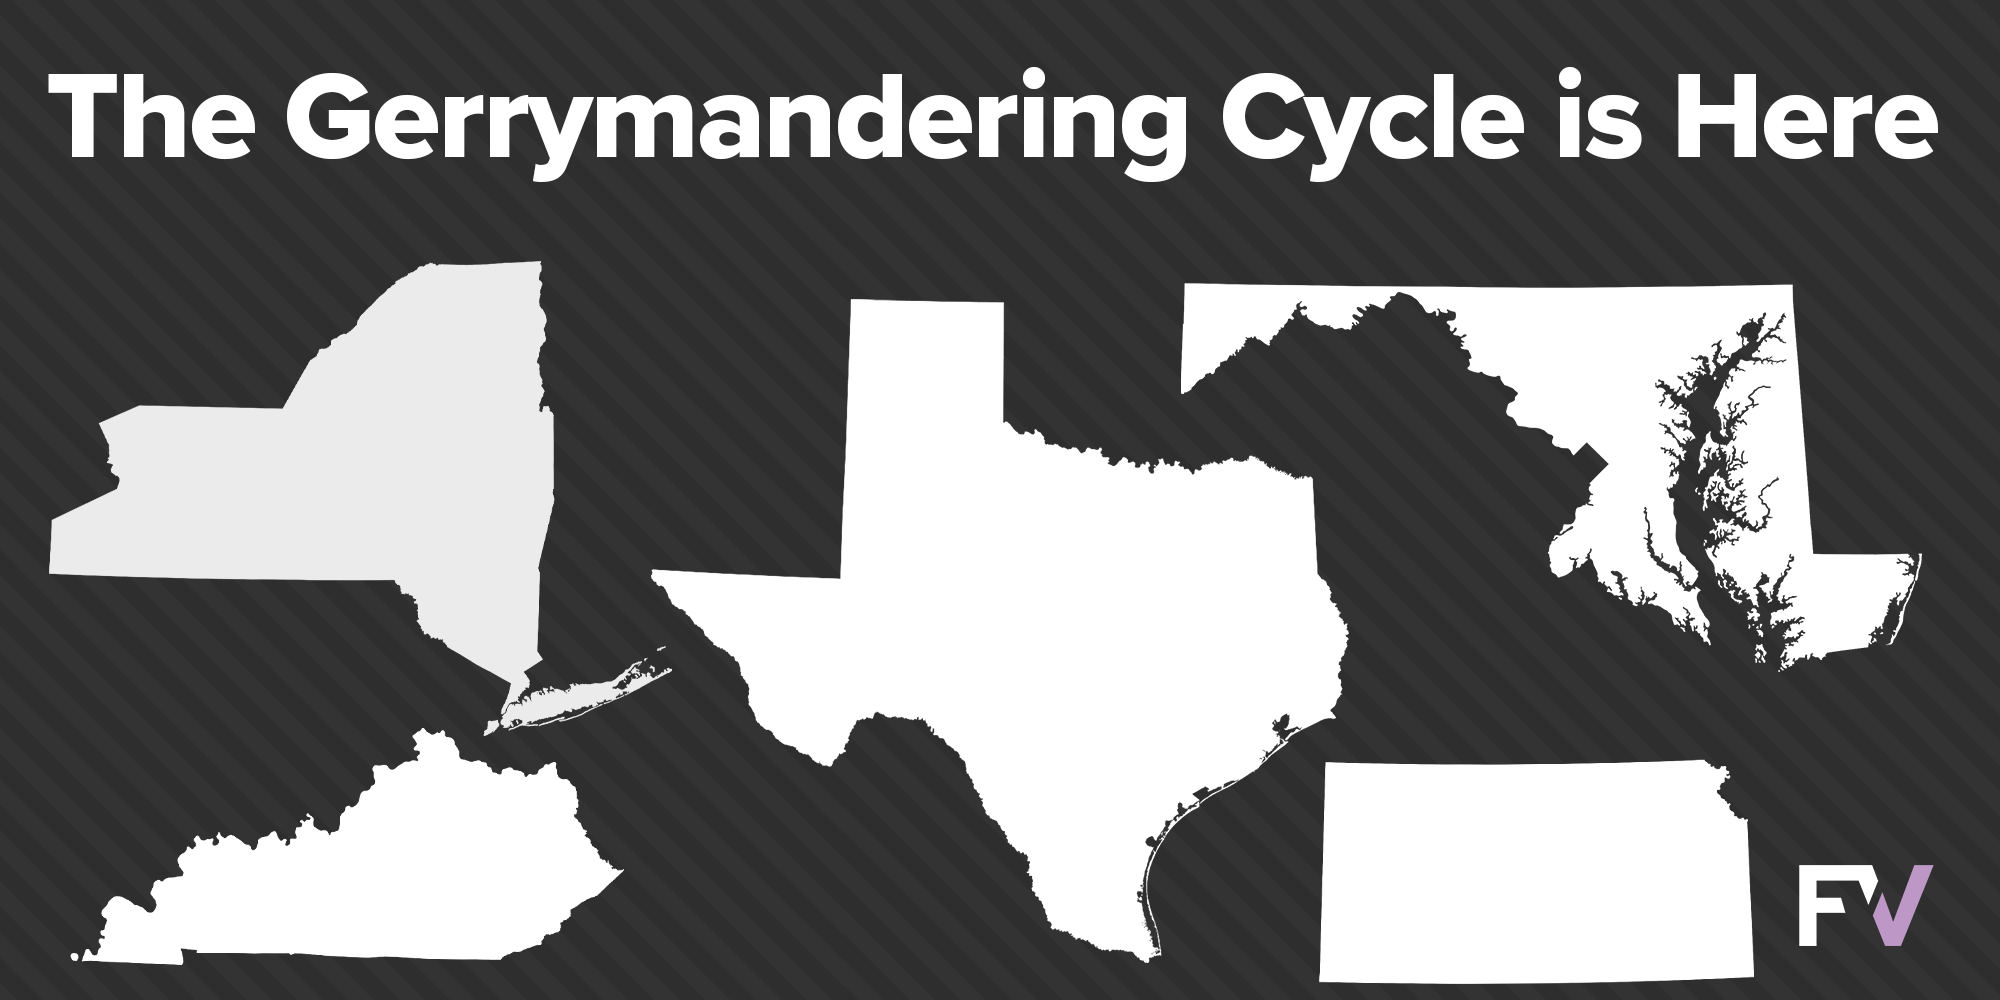 The next gerrymandering cycle is about to begin